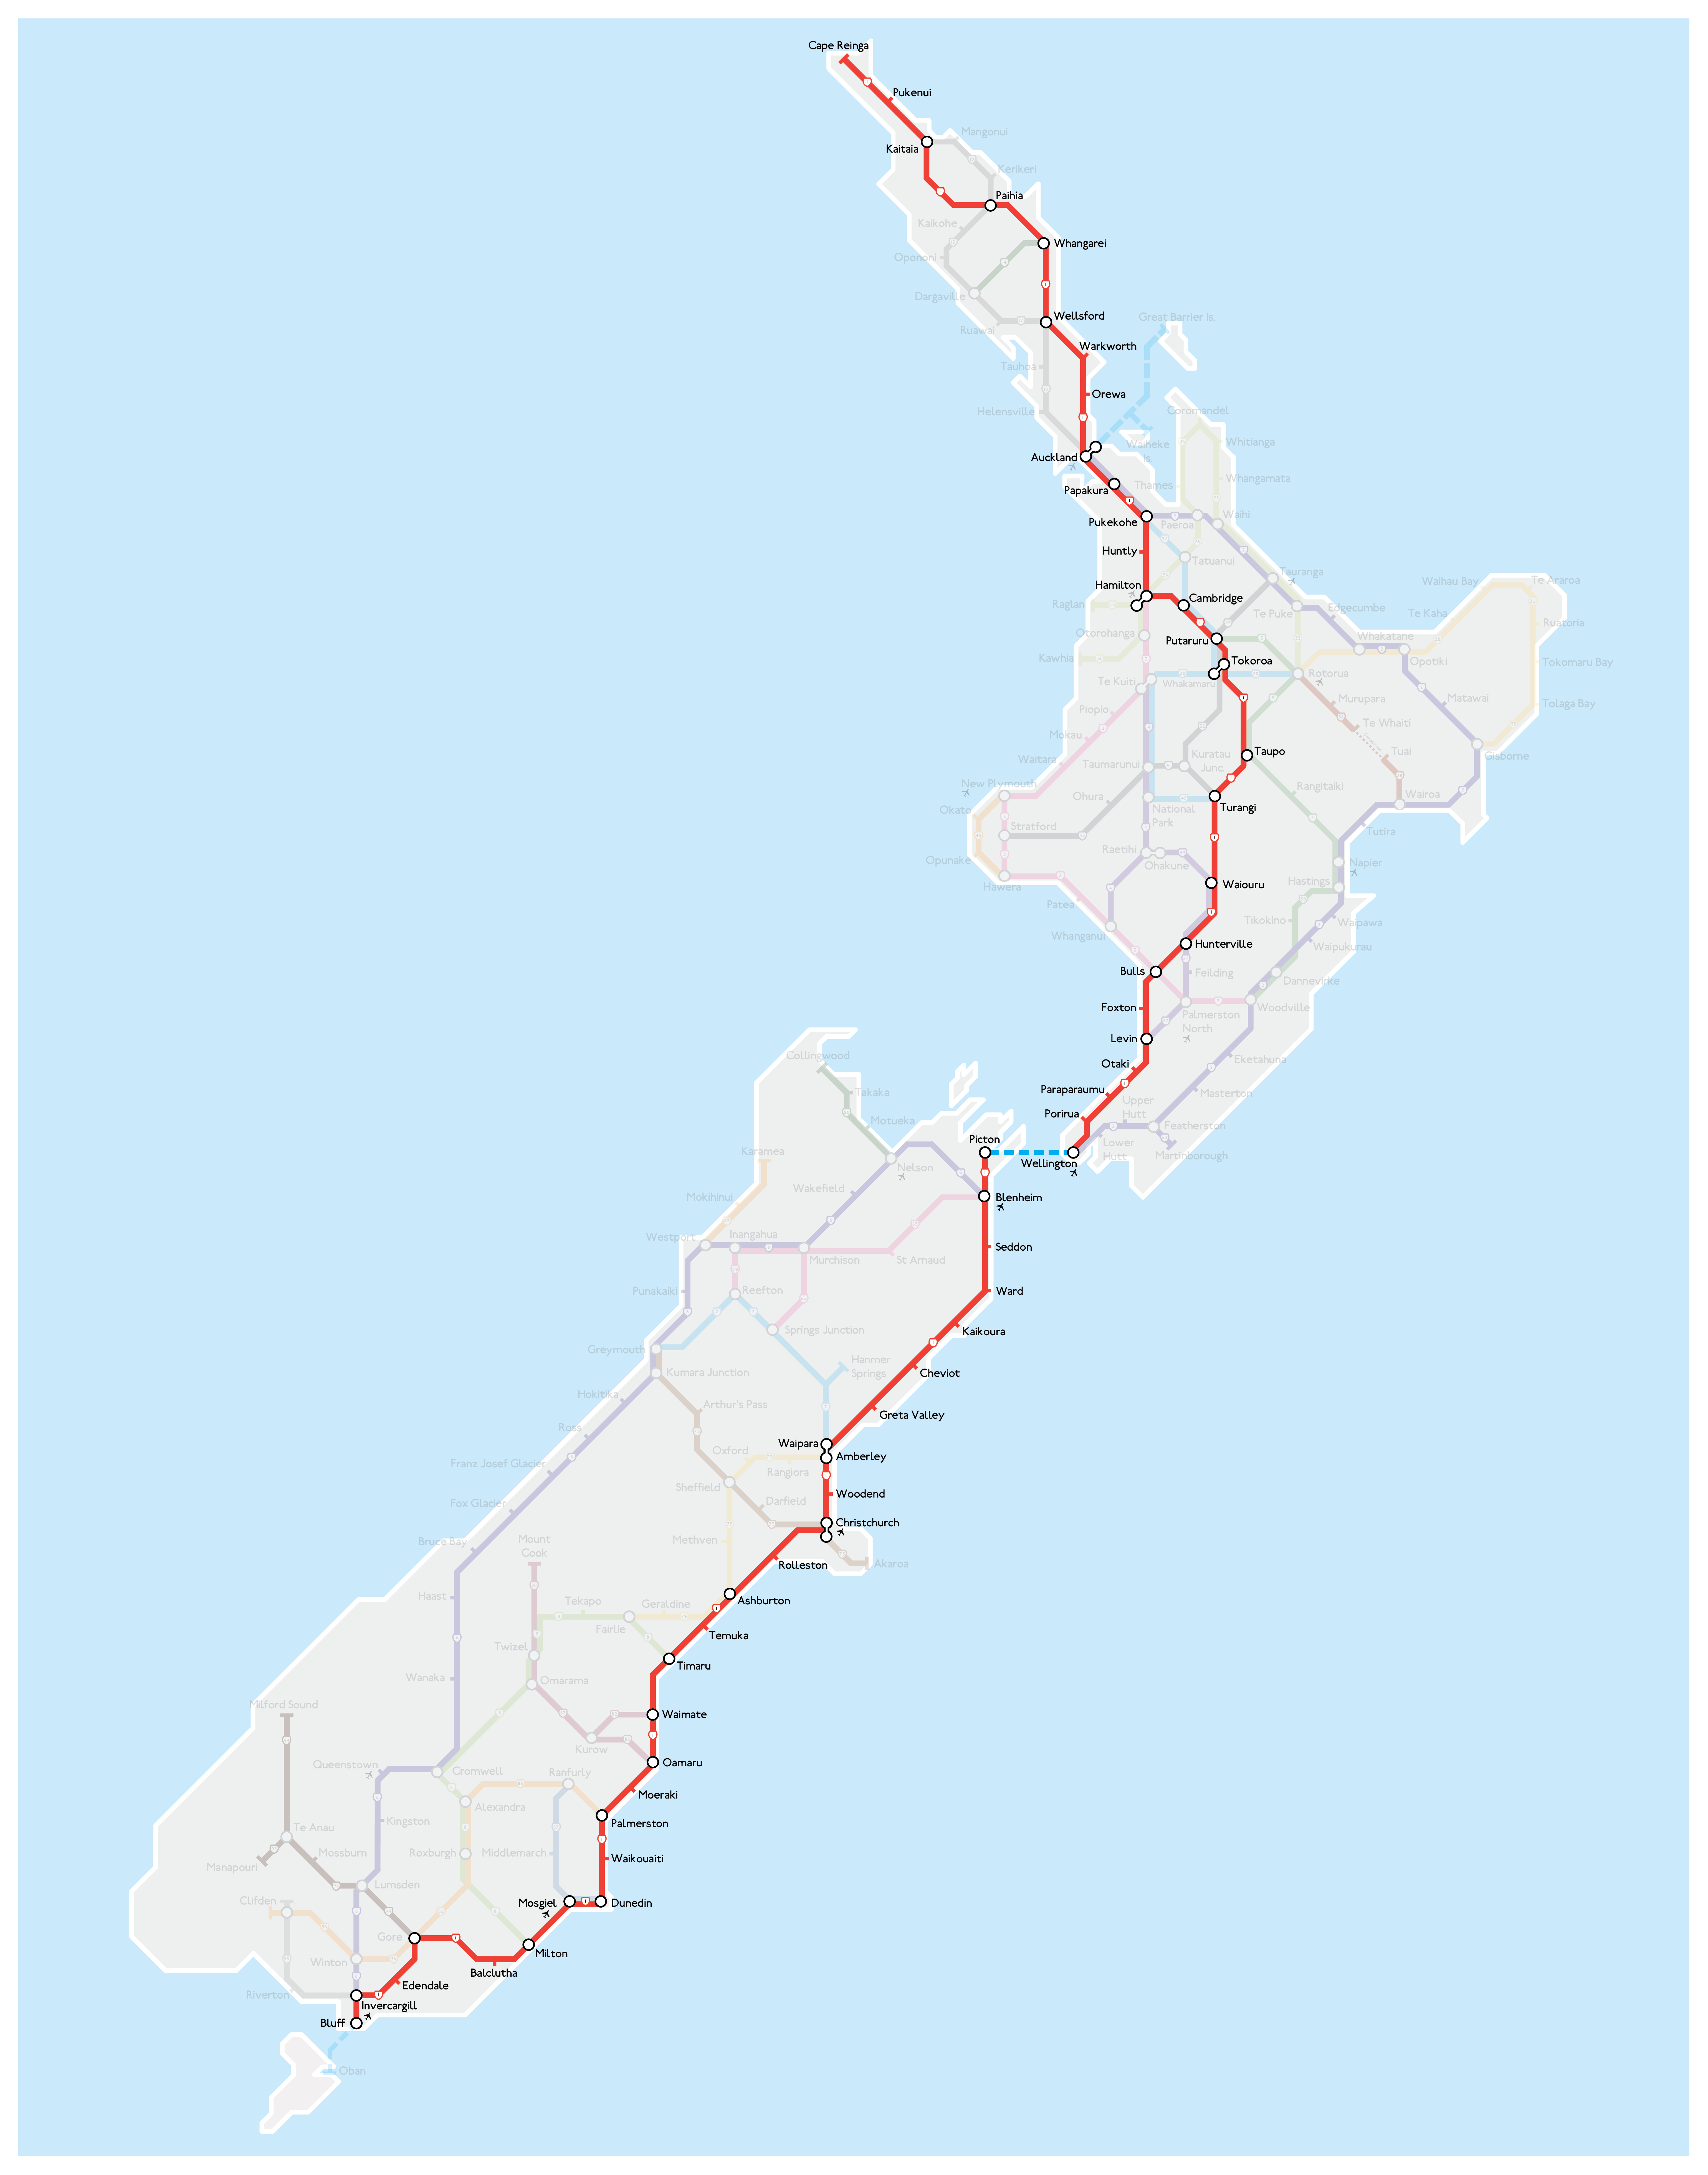 New Zealand Highway Map.The Great New Zealand Road Trip